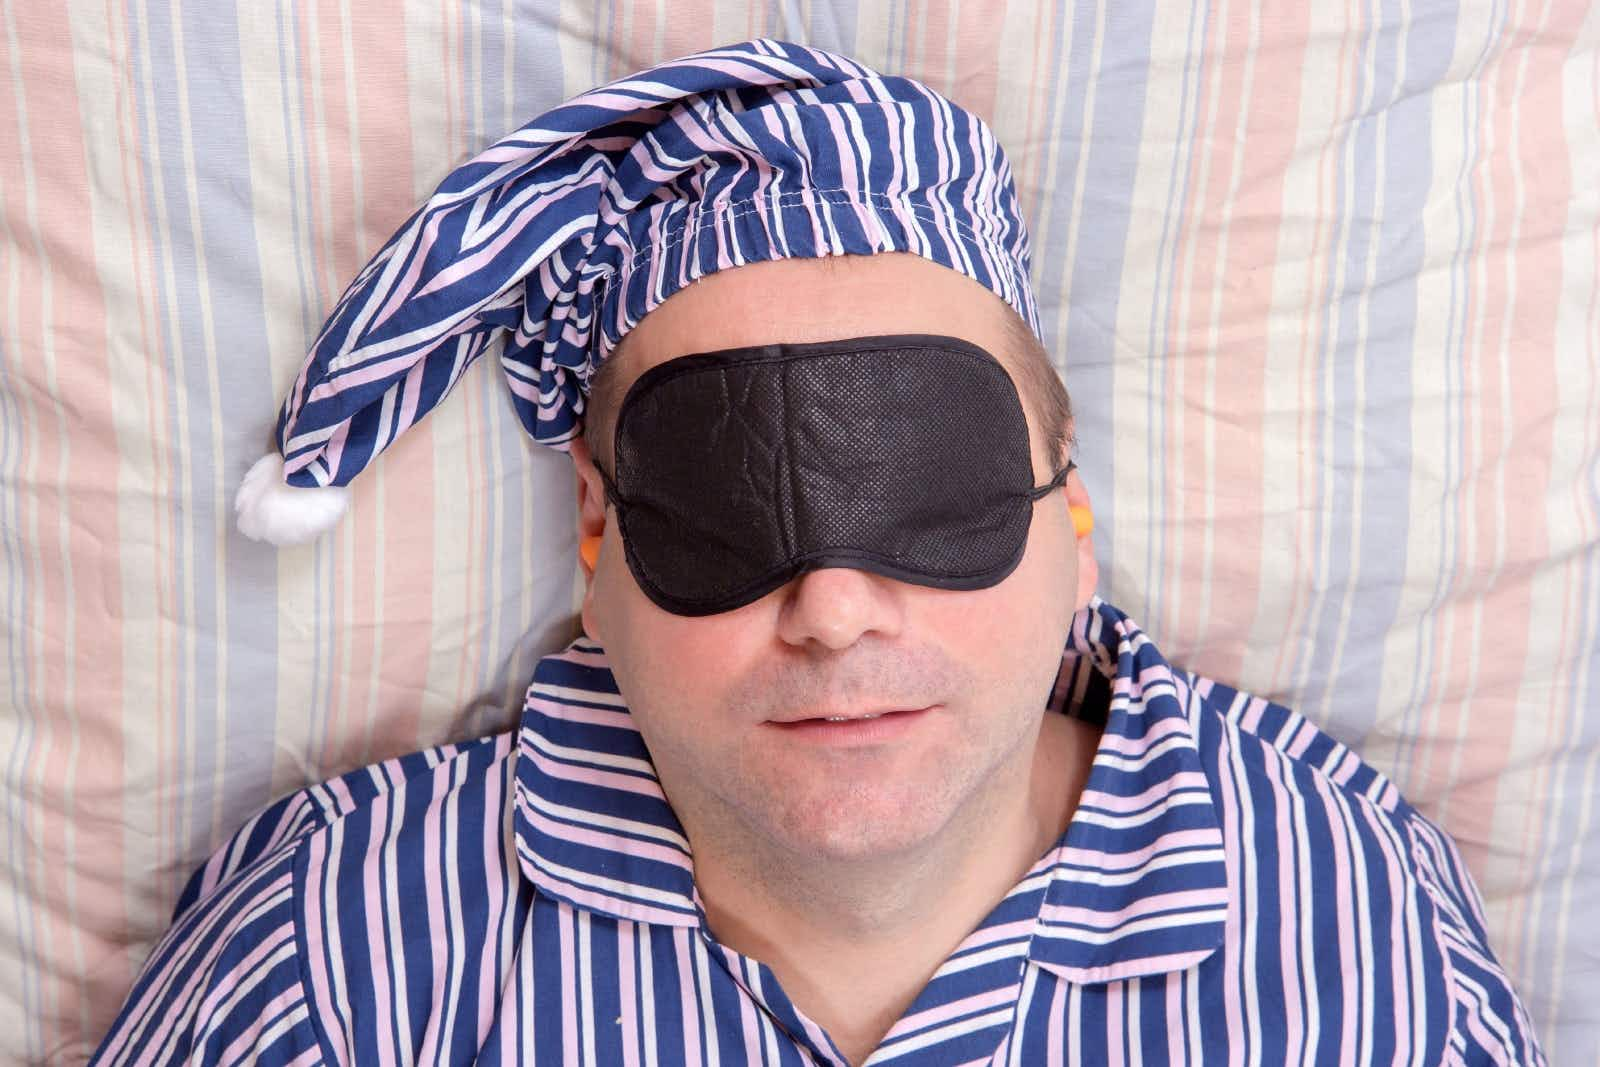 A middle-aged man dressed in blue and white striped pyjamas and matching hat reclines on a striped bedsheet with a black eye mask over his face and ear plugs.